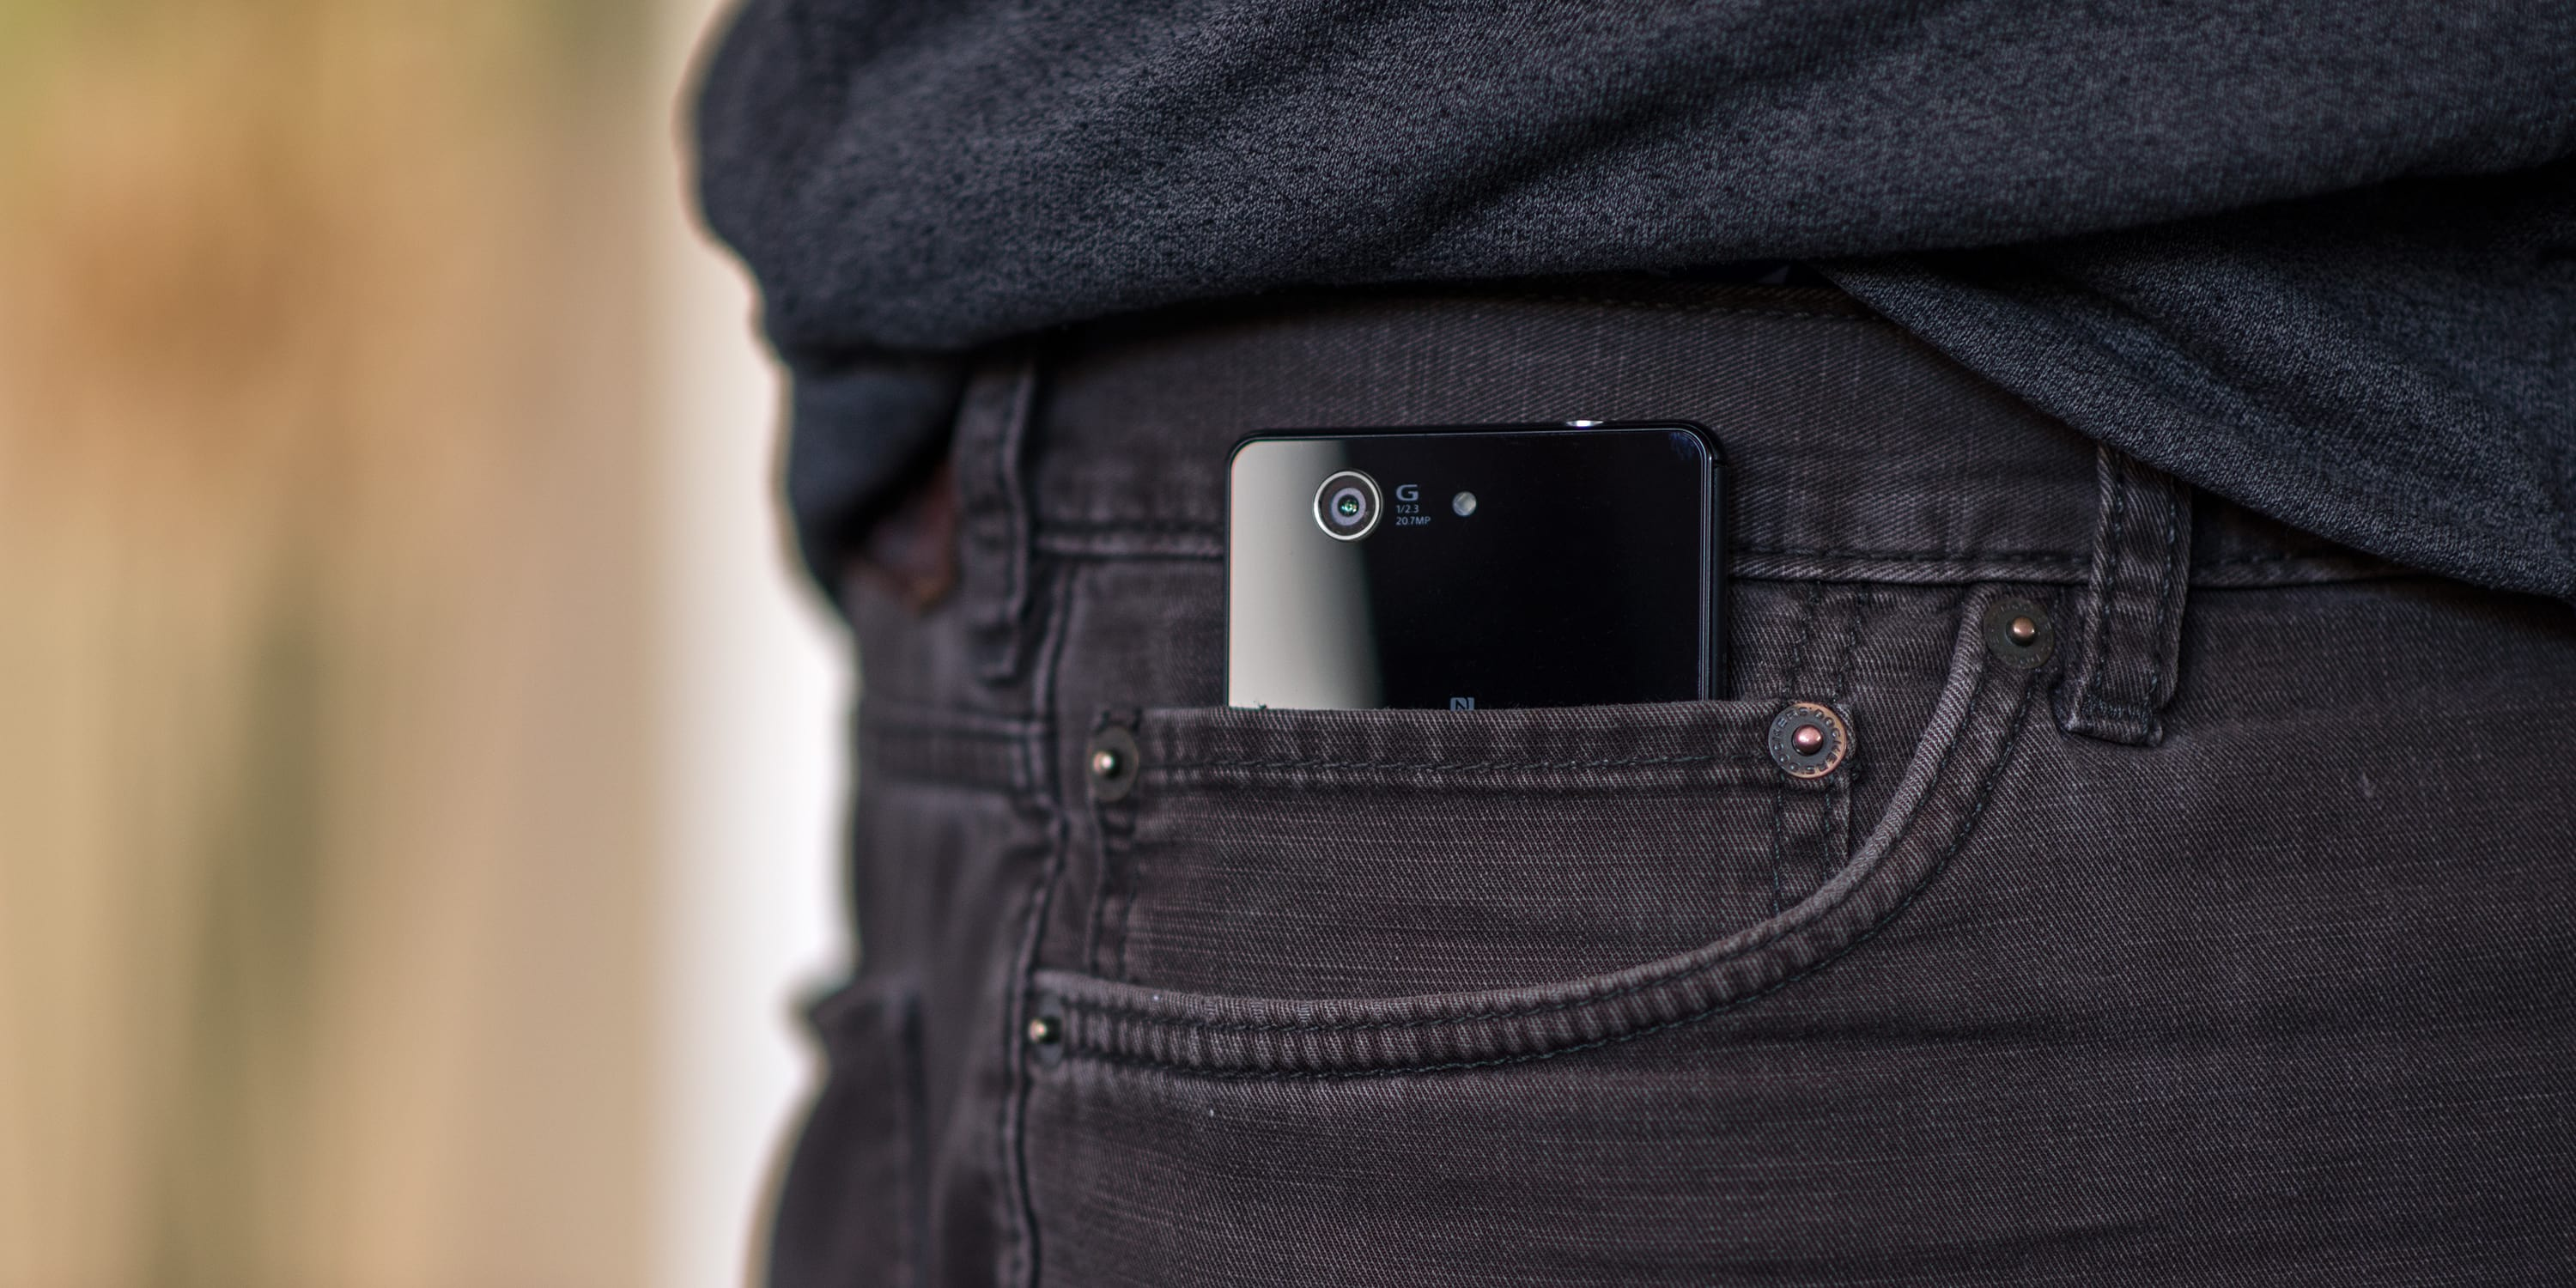 A photograph of the Sony Xperia Z3 Compact in a pocket.